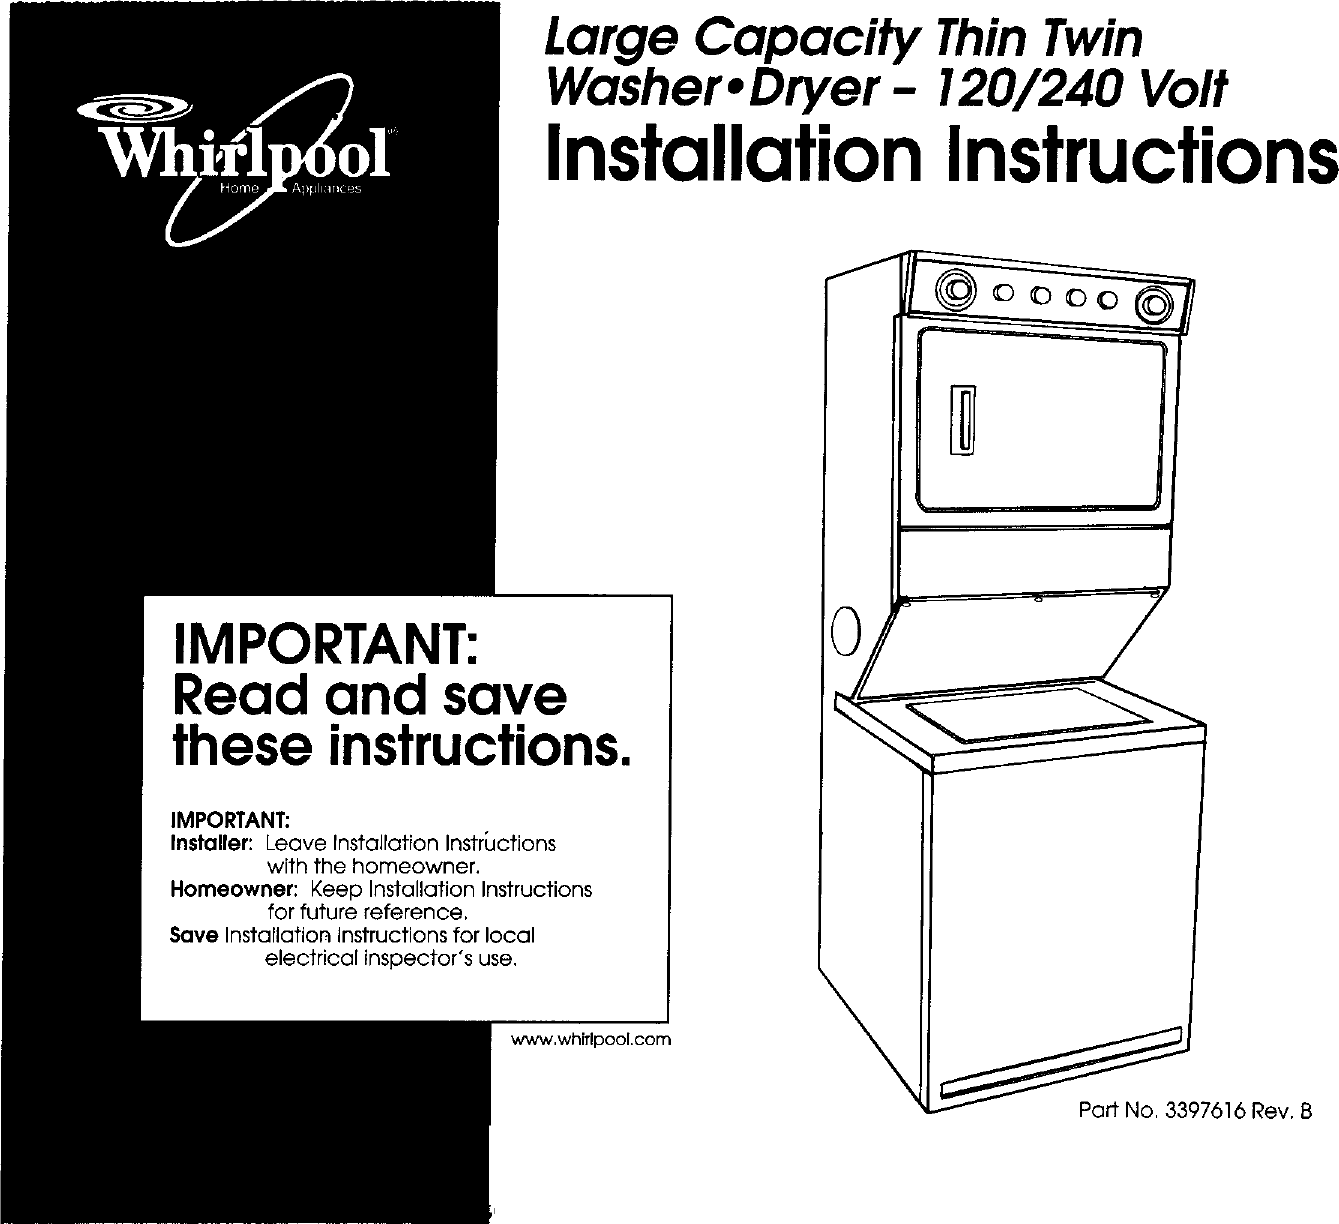 Www Whirlpool Com >> Whirlpool Lte6234dq1 User Manual Laundry Center Manuals And